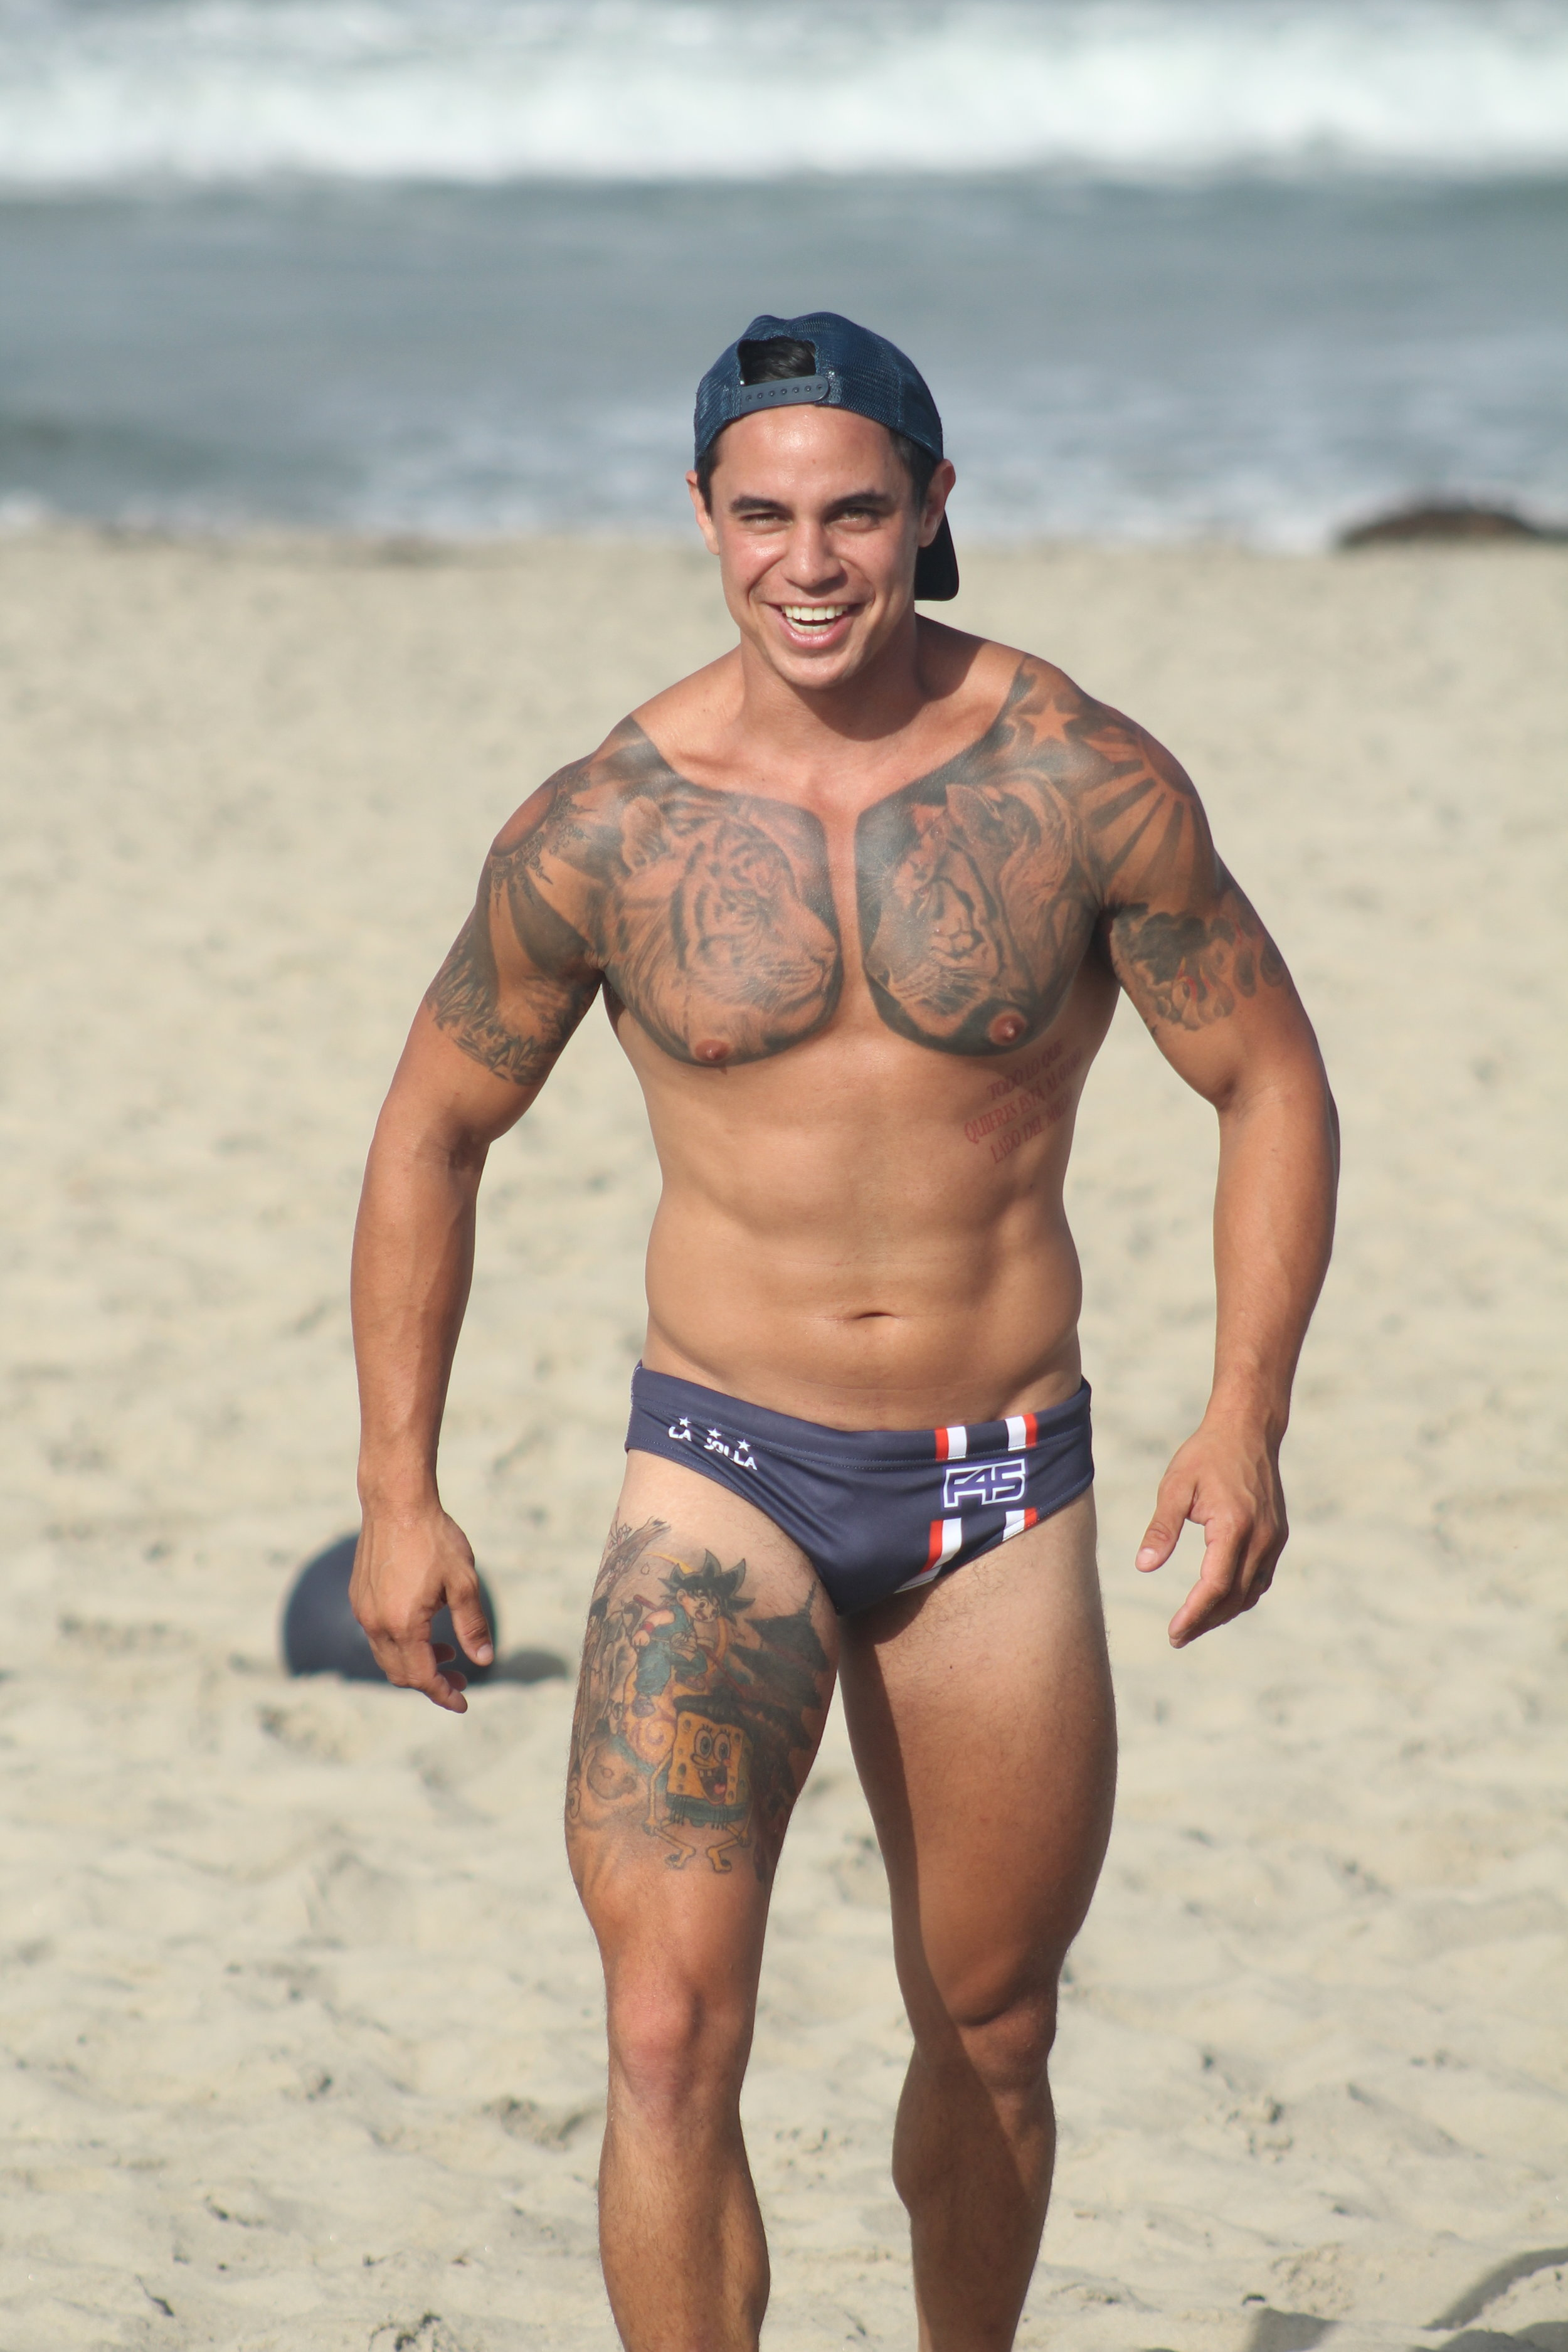 """""""Planned a beach workout with my mate's company. Signed up 10 new members because I got the rig out."""" - -J.D."""